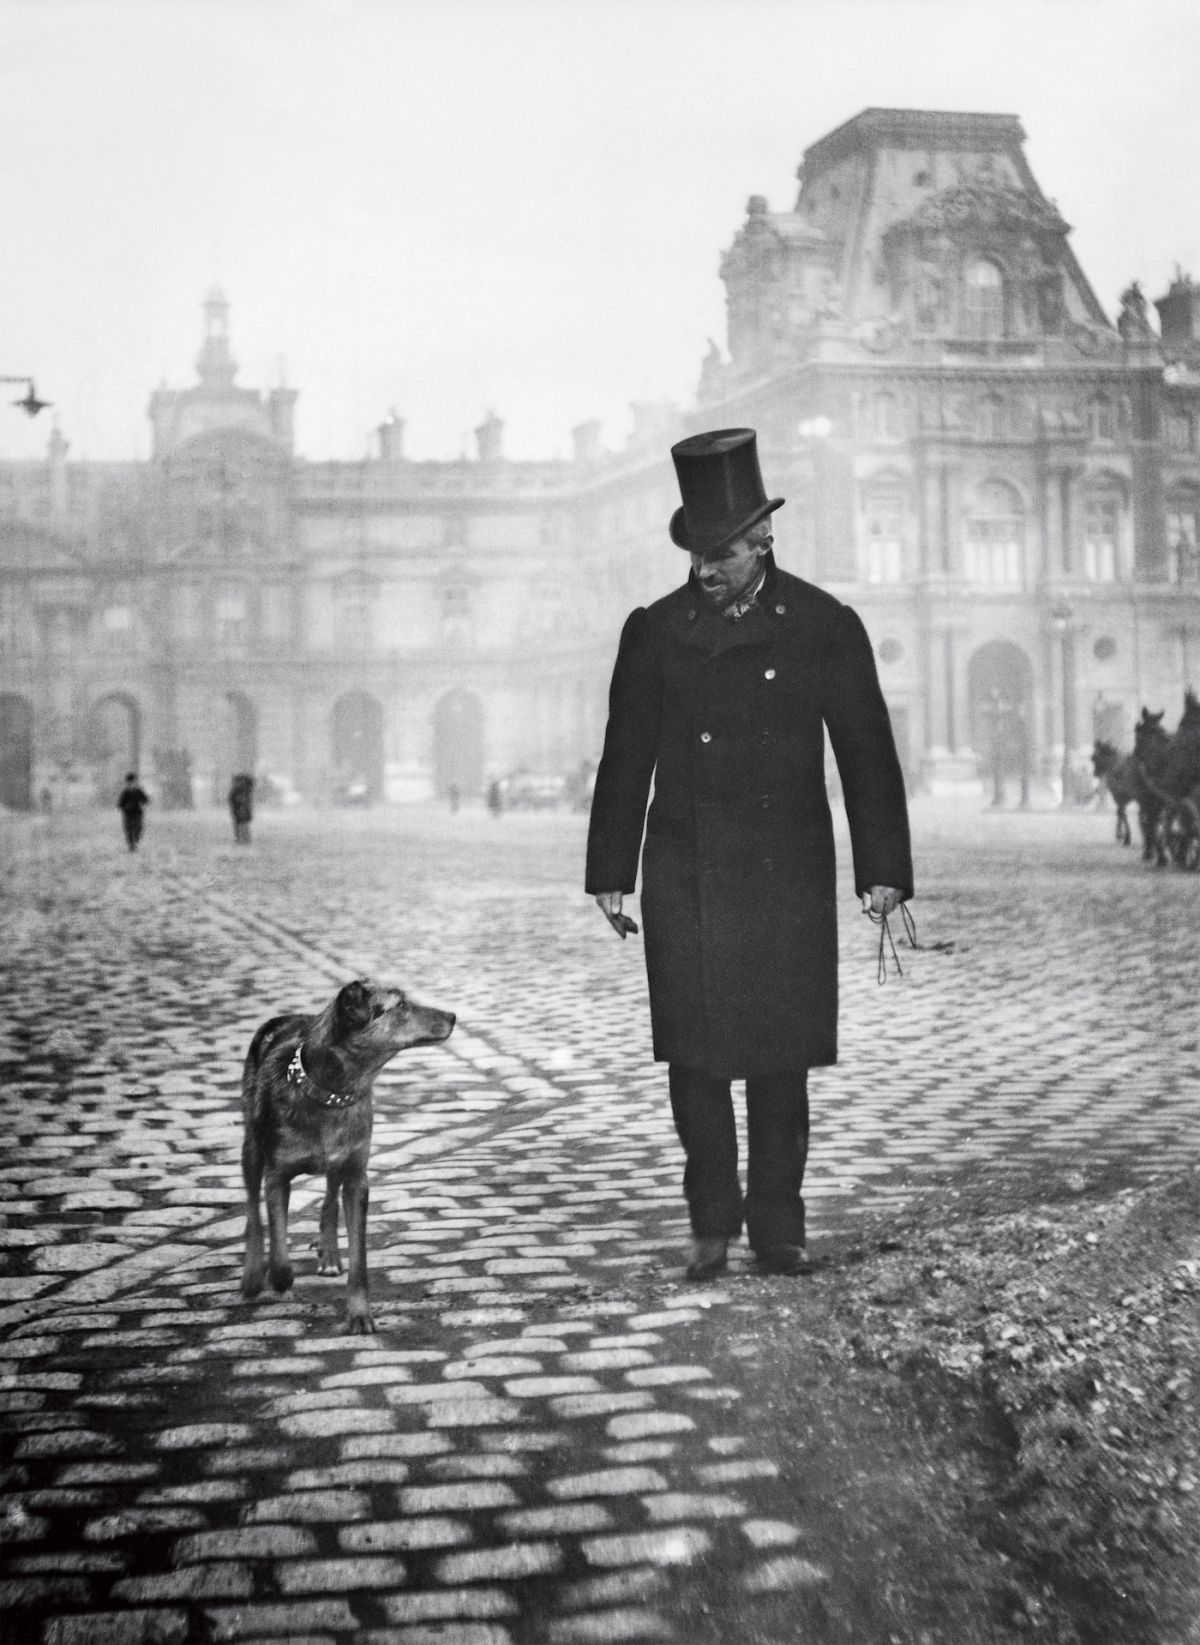 Gustave Caillebotte and his dog. (Credit: Martial Caillebotte)